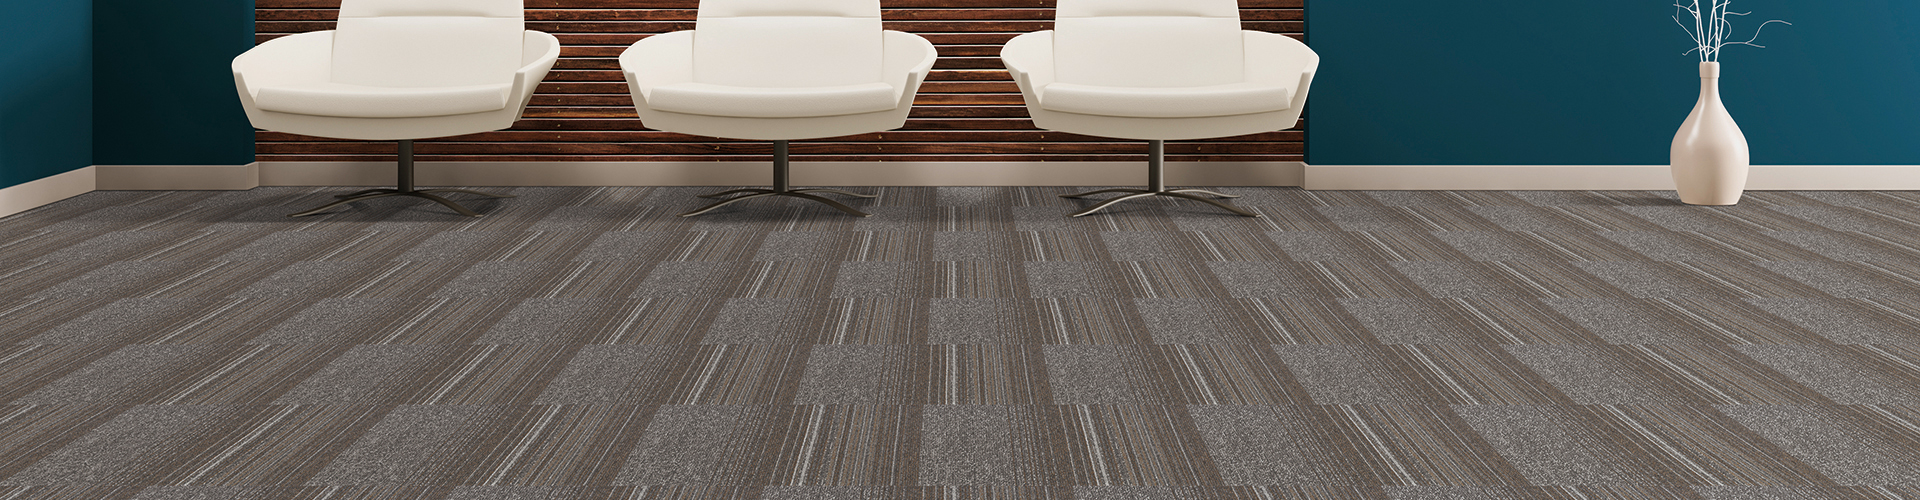 Modular tile kraus flooring matrix 03 oracle ashlar installation dailygadgetfo Choice Image